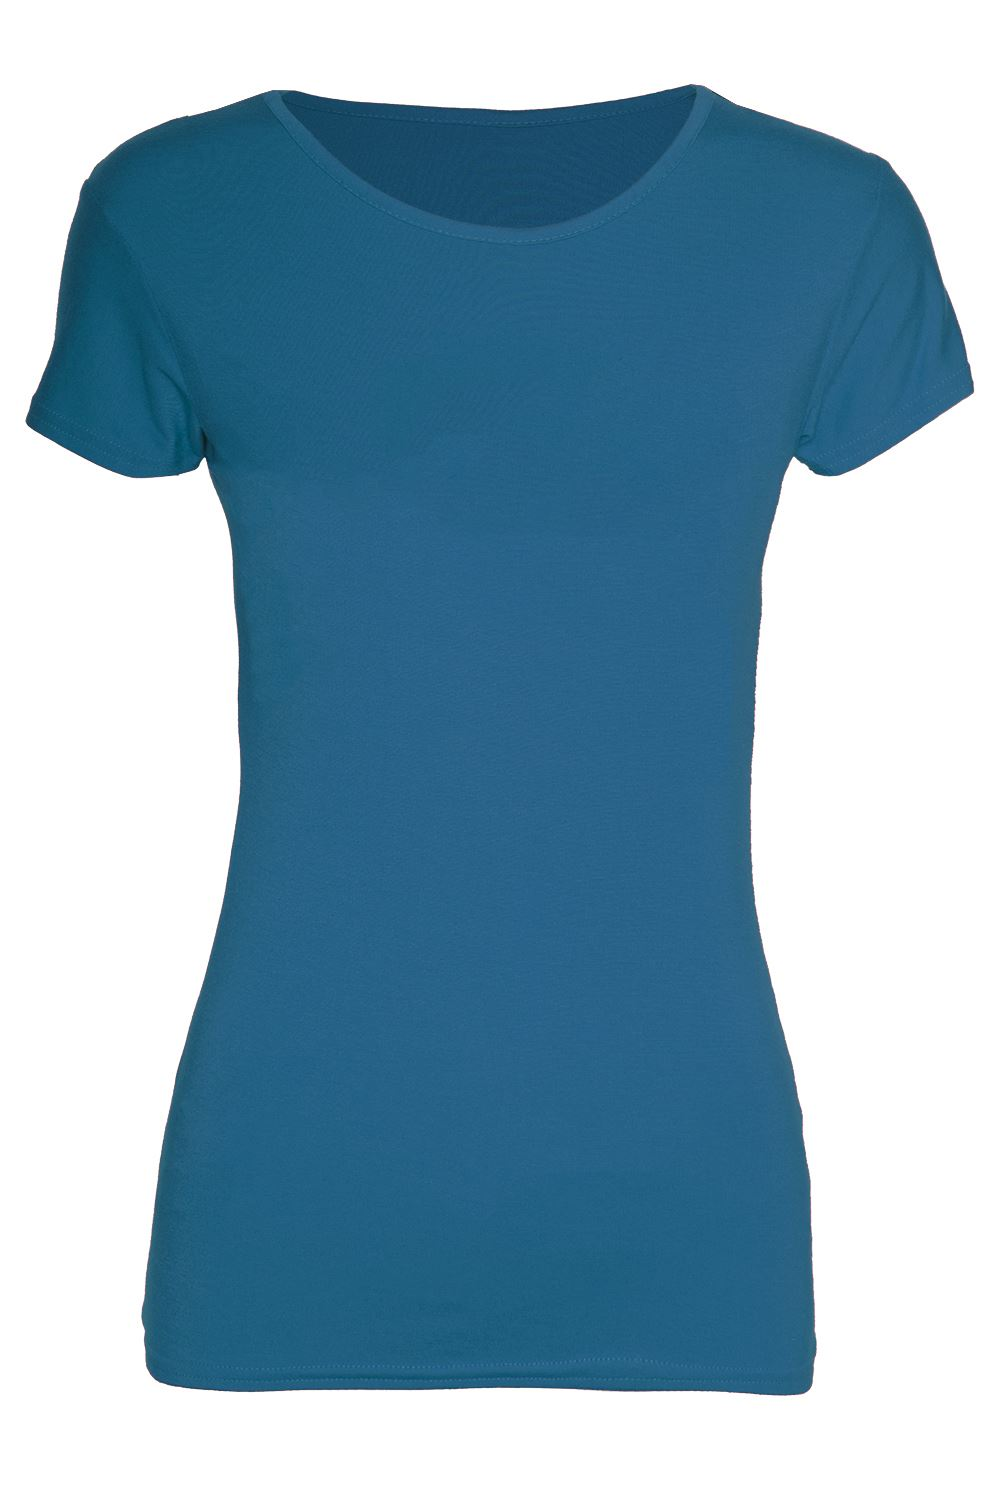 Womens-Short-Sleeves-Top-Ladies-Basic-Jersey-Cotton-Tunic-Vest-Tee-T-Shirt